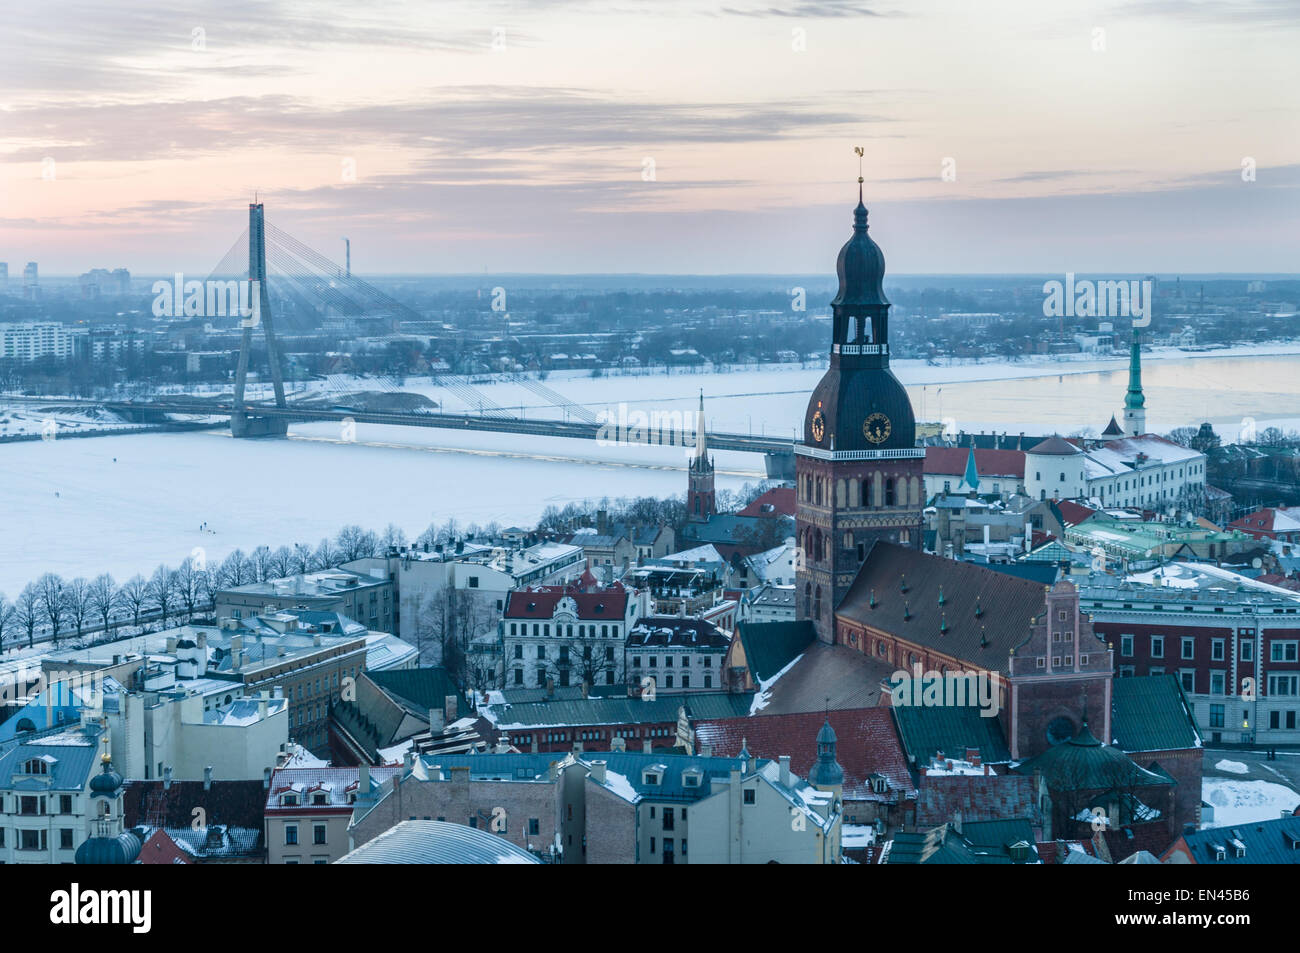 Old and modern Riga winter from viewing platform after sunset, Latvia - Stock Image